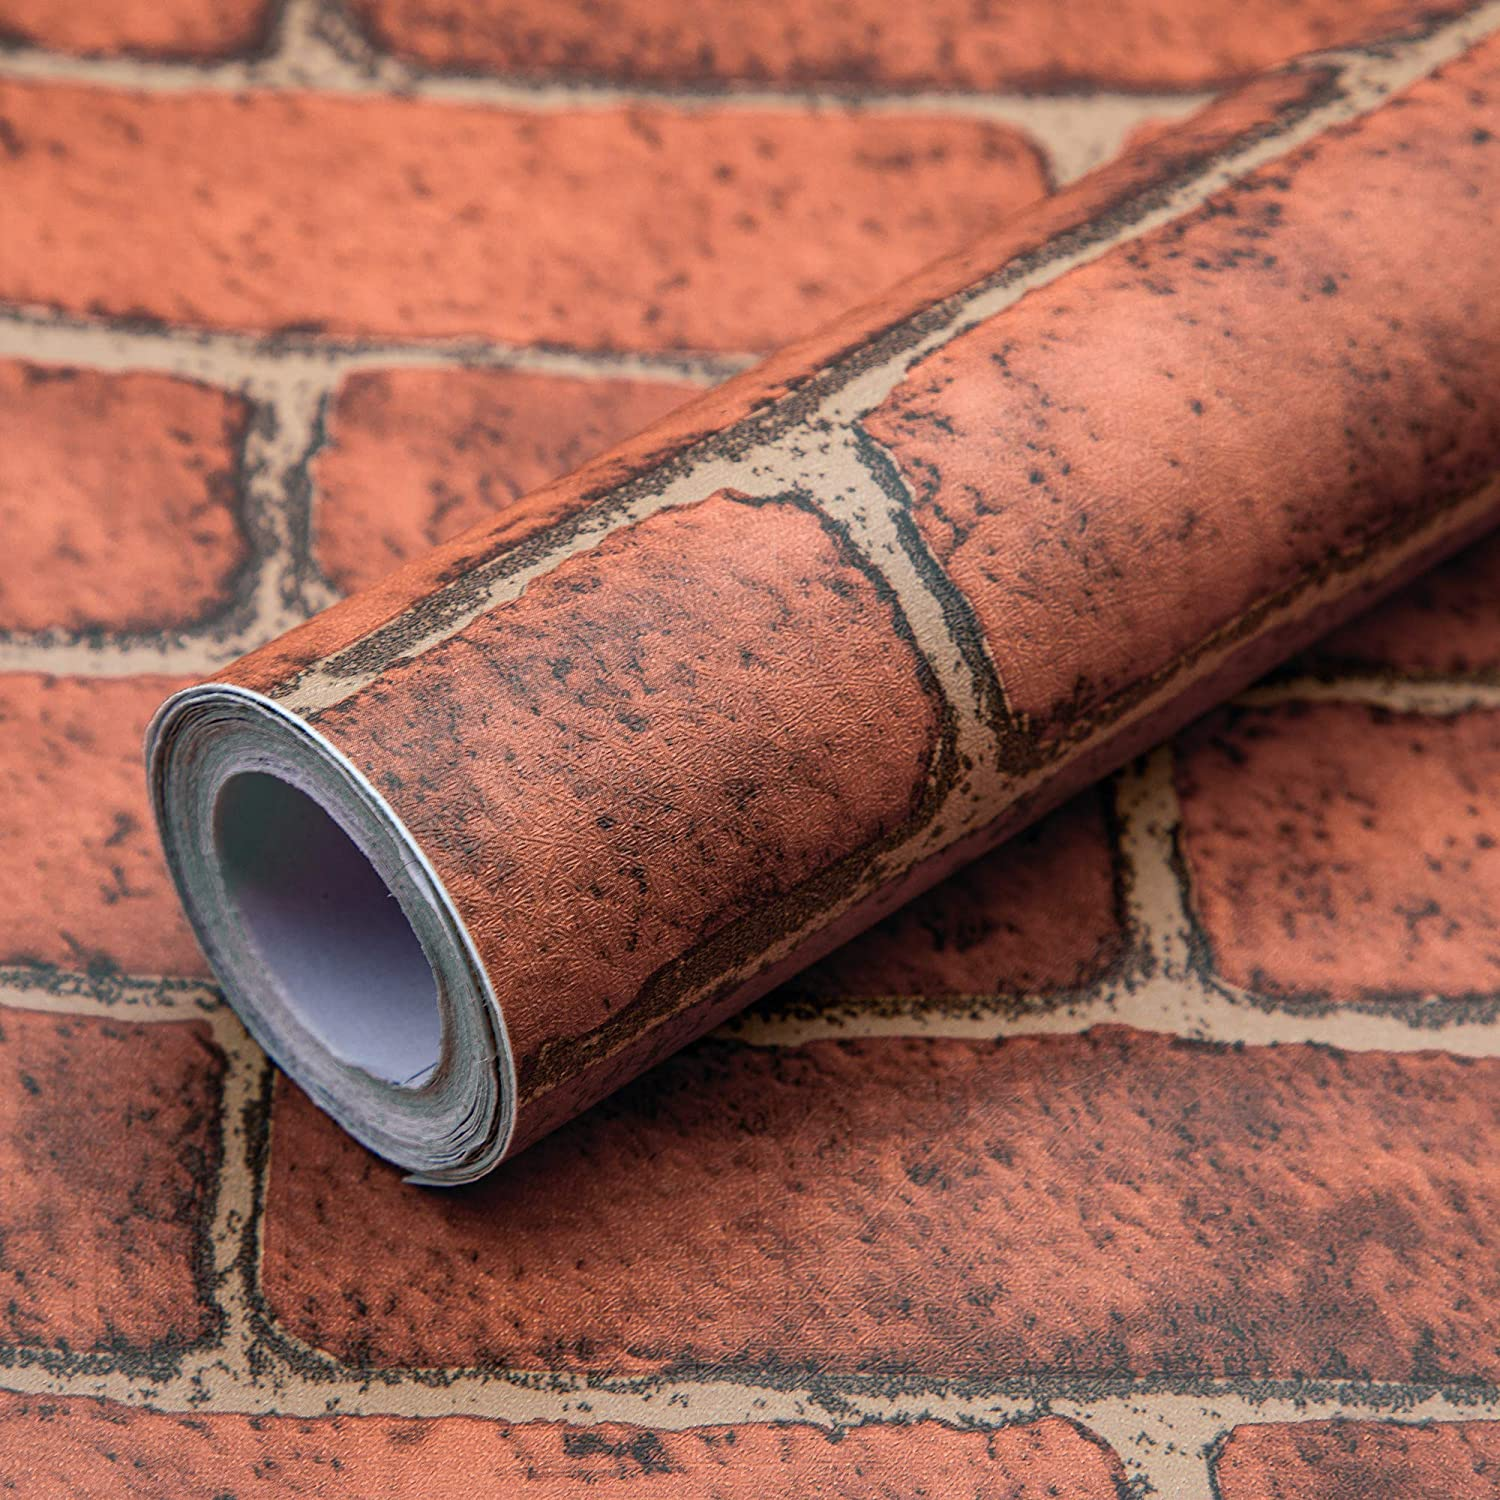 Woltop 3D Brick Wallpaper Peel and Stick Red Style 2-17.7 x 118 inches 3D Removable, Decorative Faux Brick Wallpapers for Wall Décor